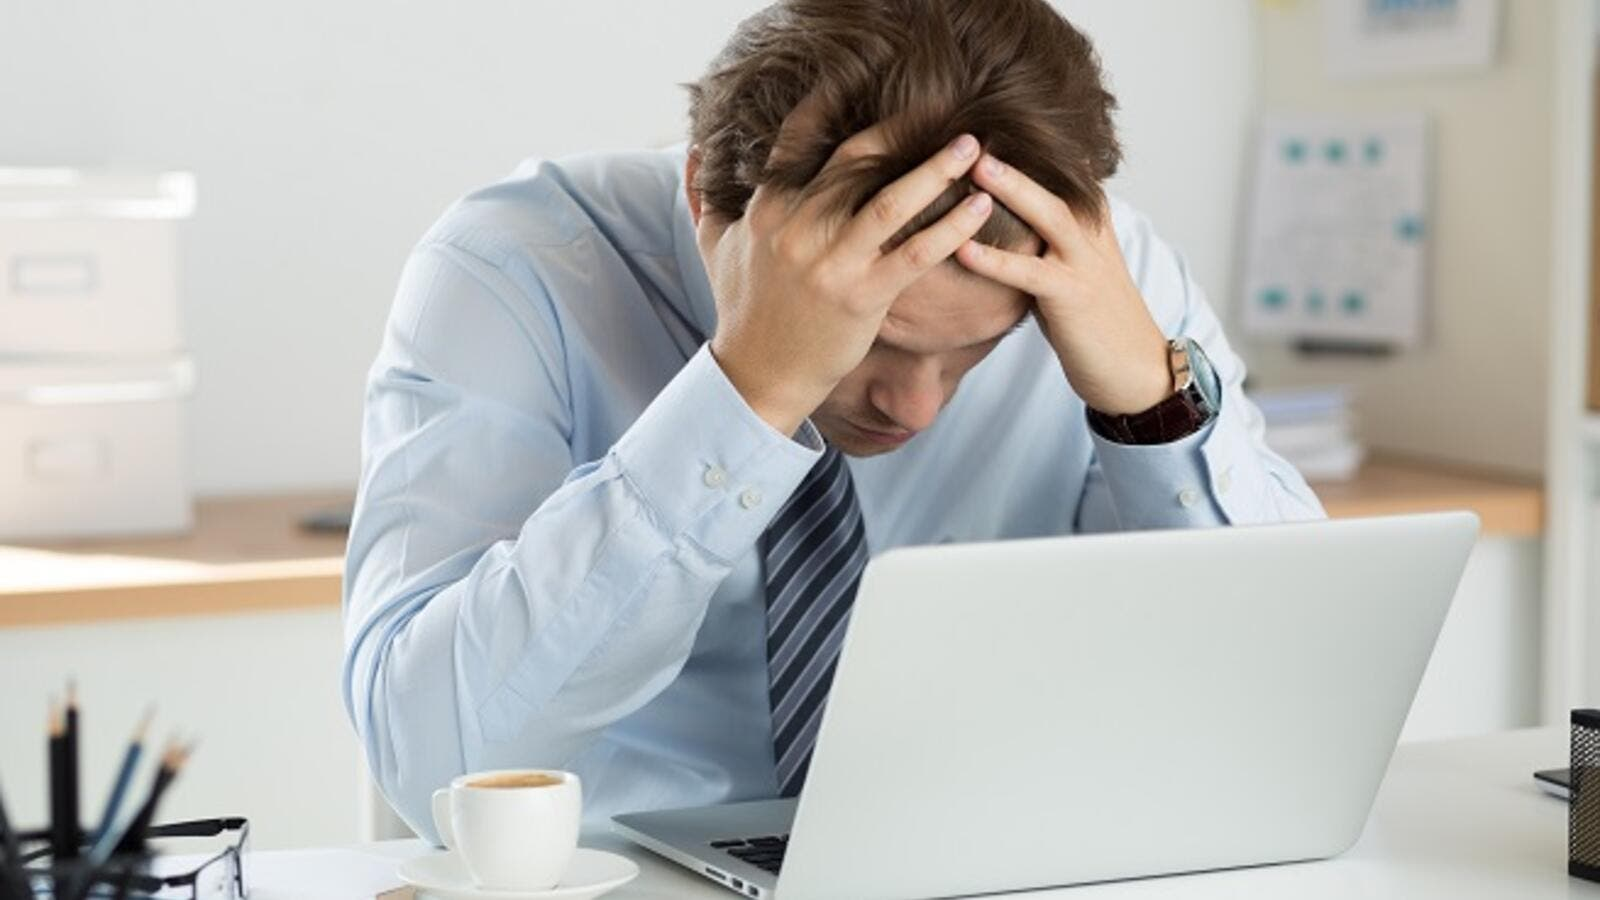 In this article, career expert Rania Oteify explores the top mistakes that can kill your career. (Shutterstock)